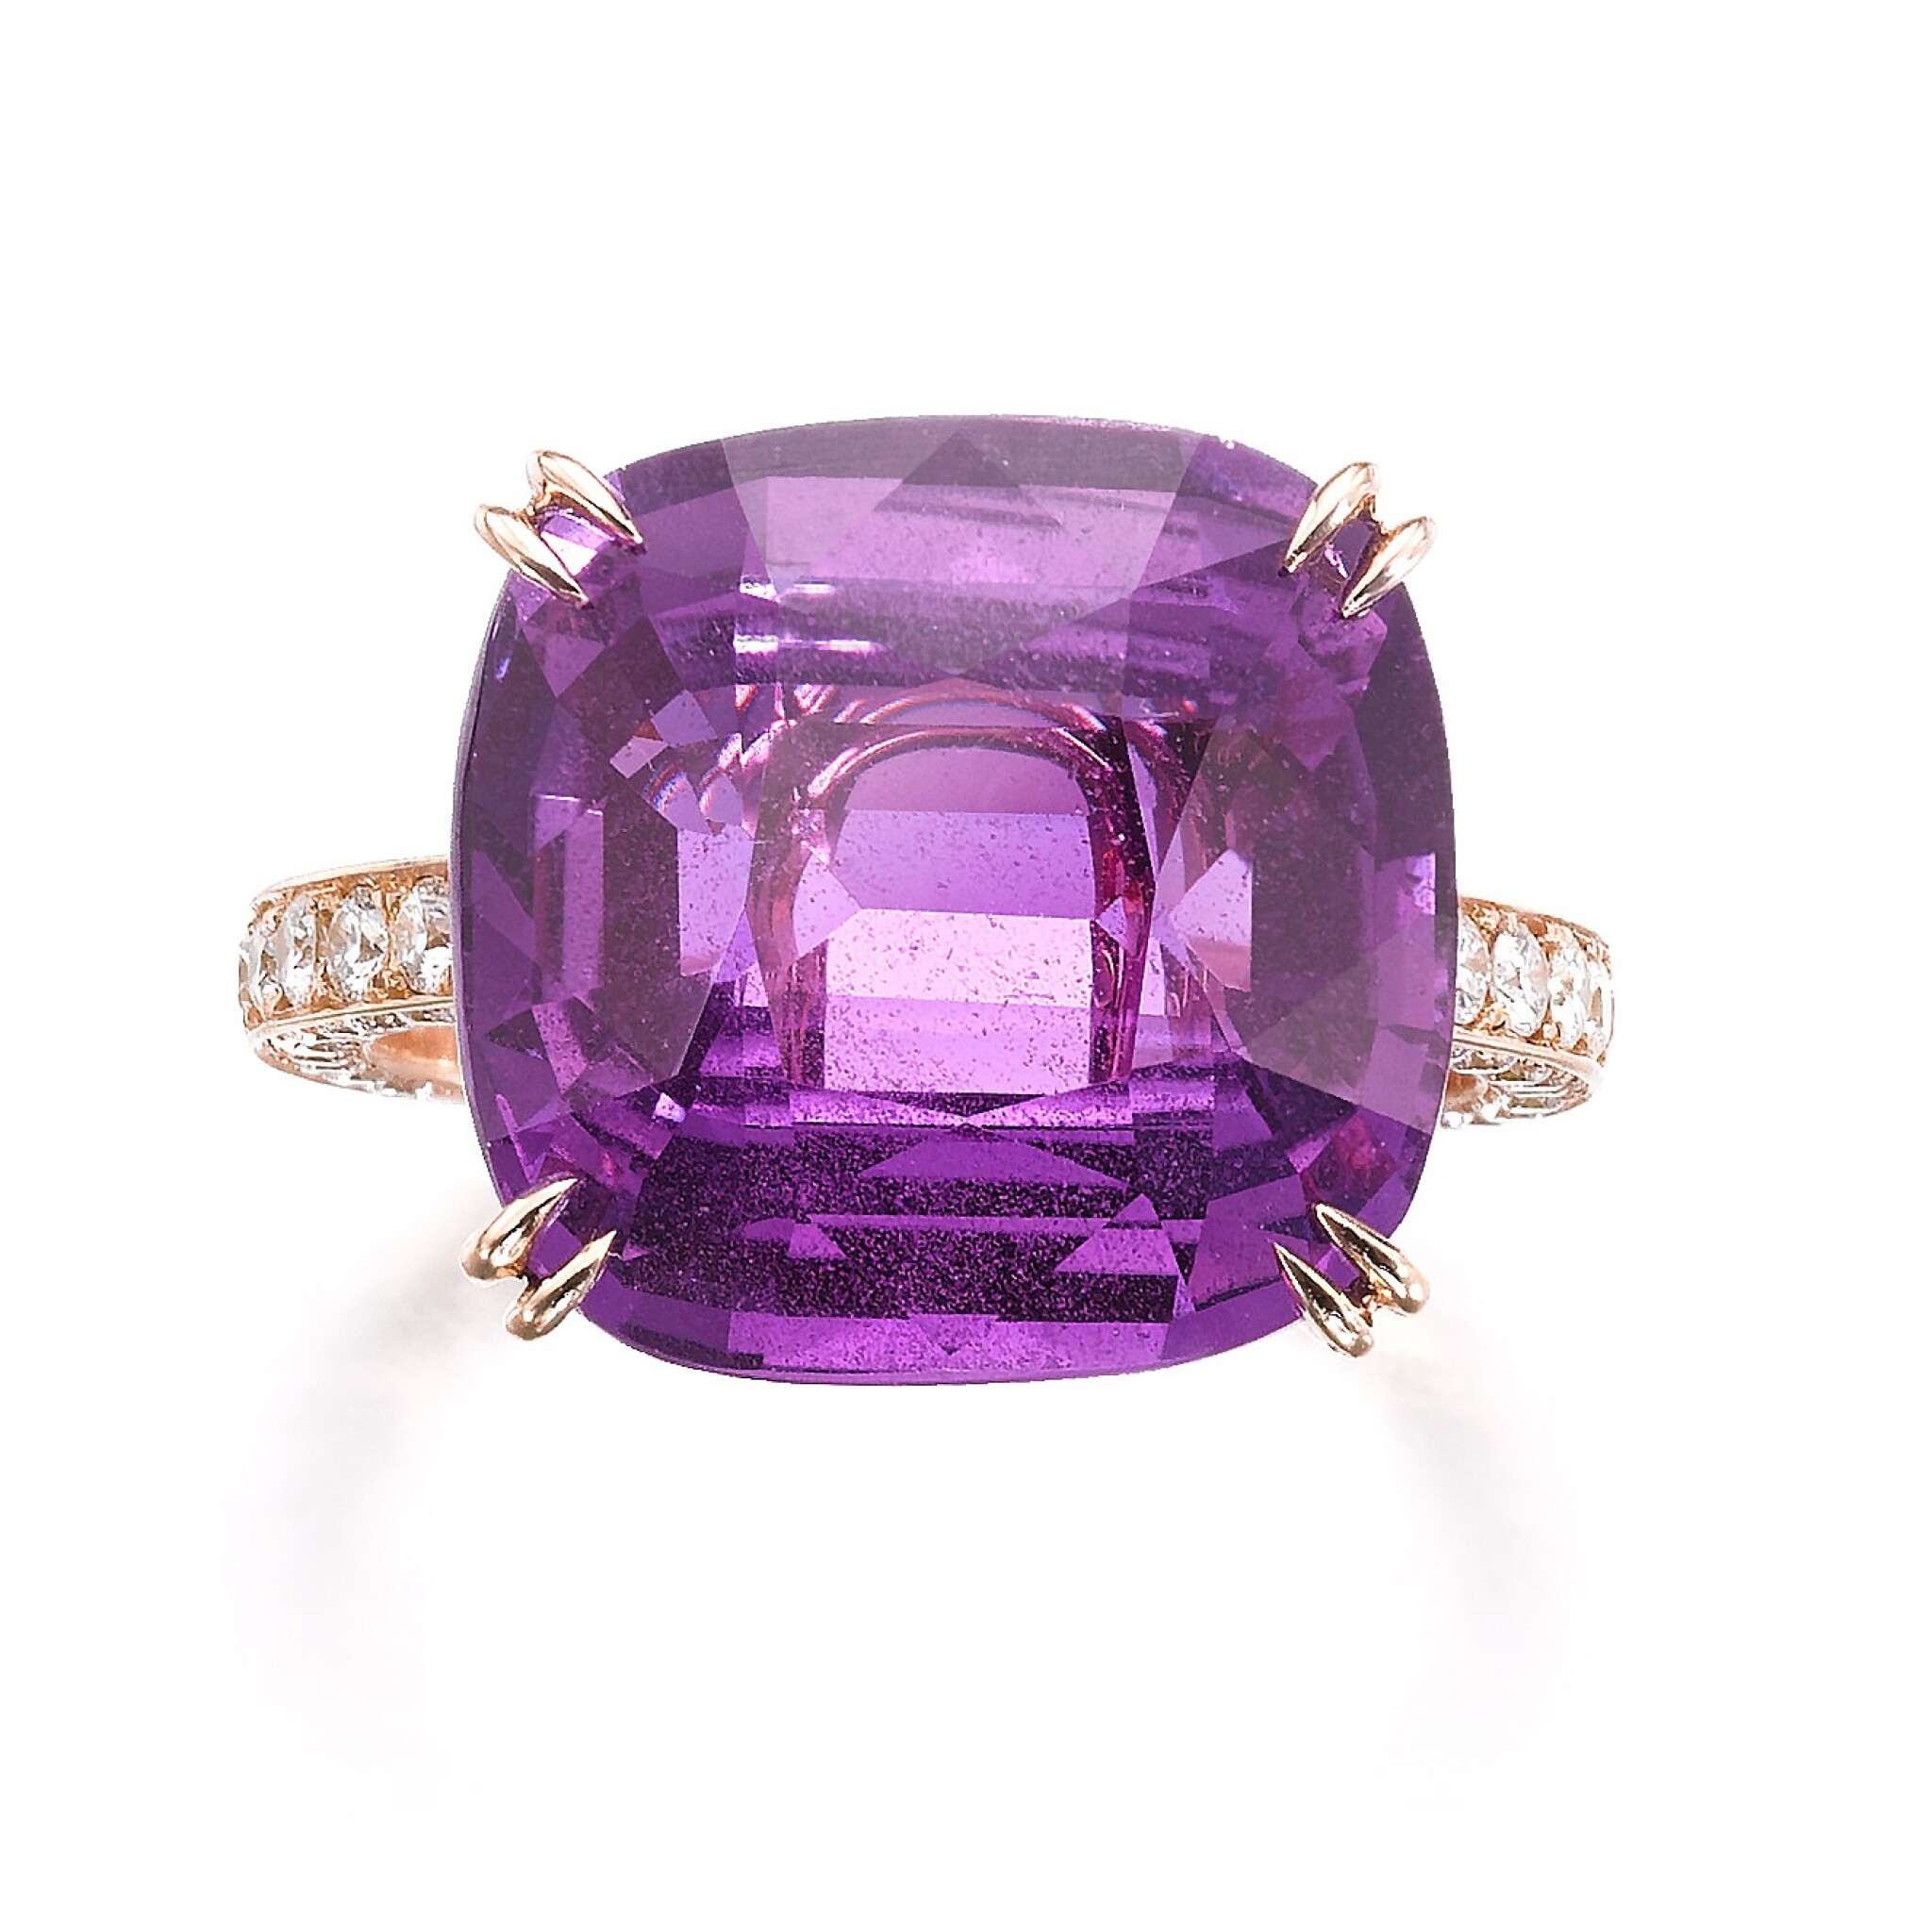 View full screen - View 1 of Lot 739. Pink-purple sapphire ring | 粉紫色剛玉戒指.